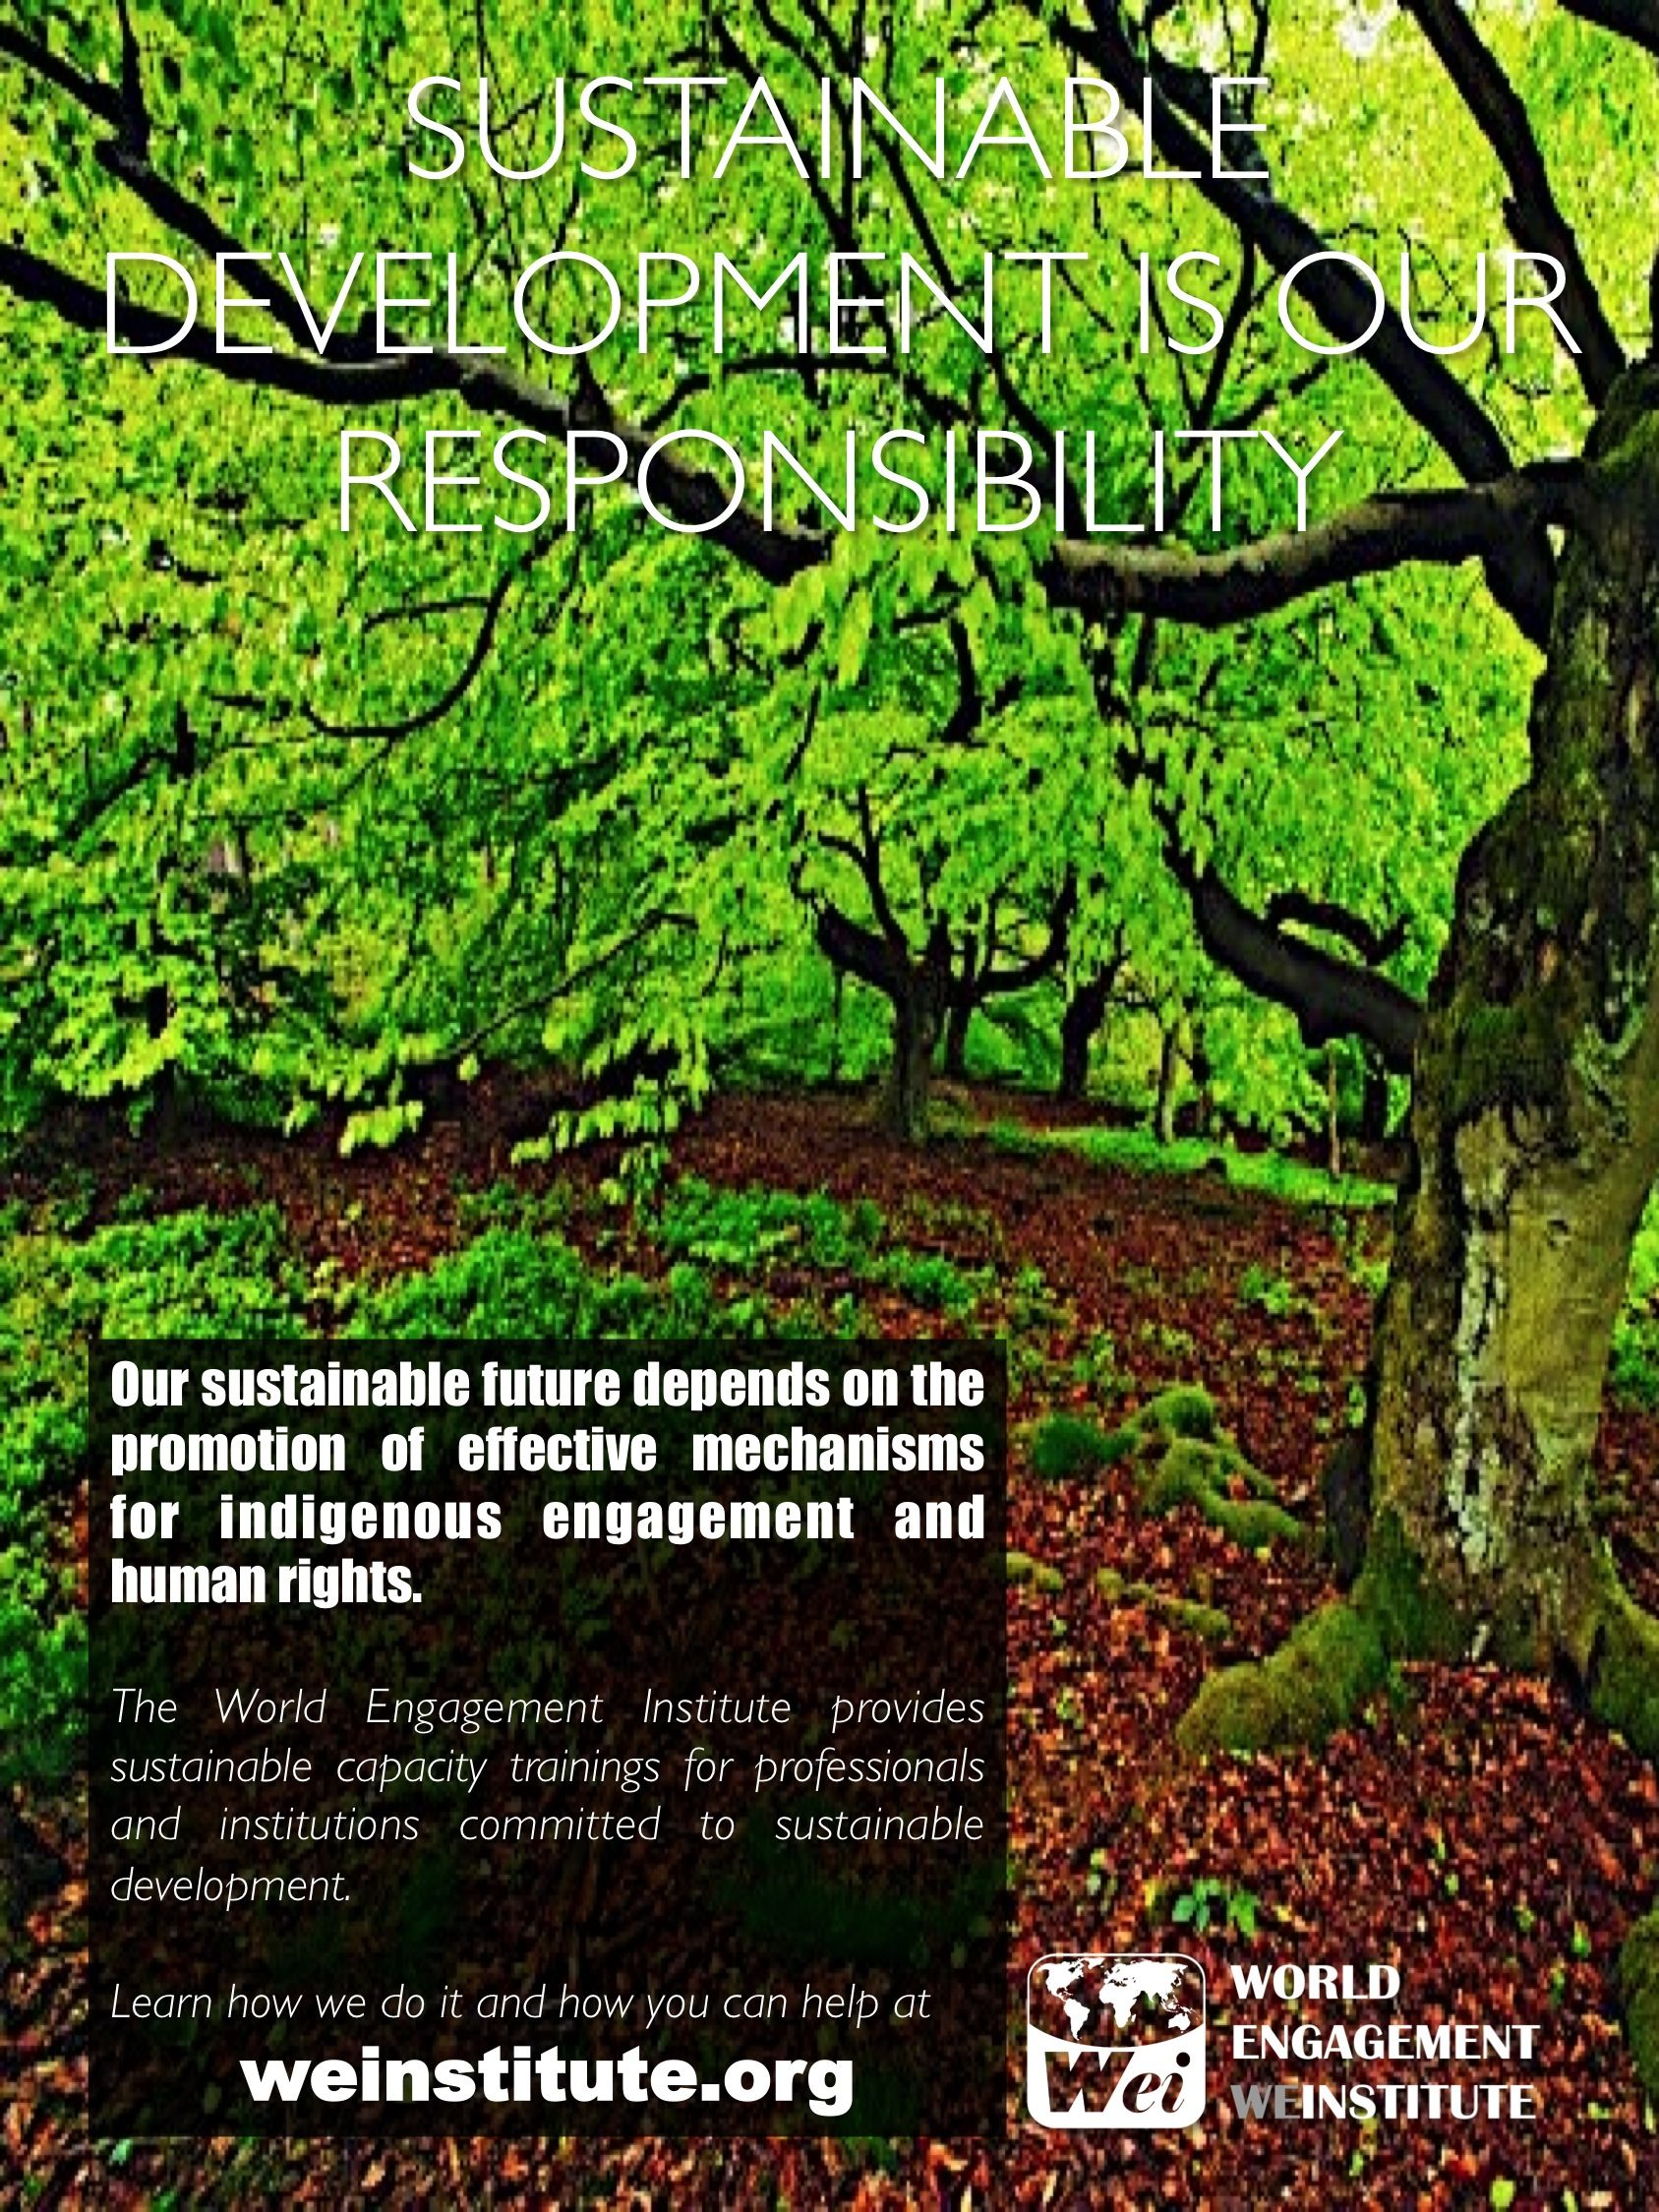 Learn about our work on sustainable development at http://weinstitute.org